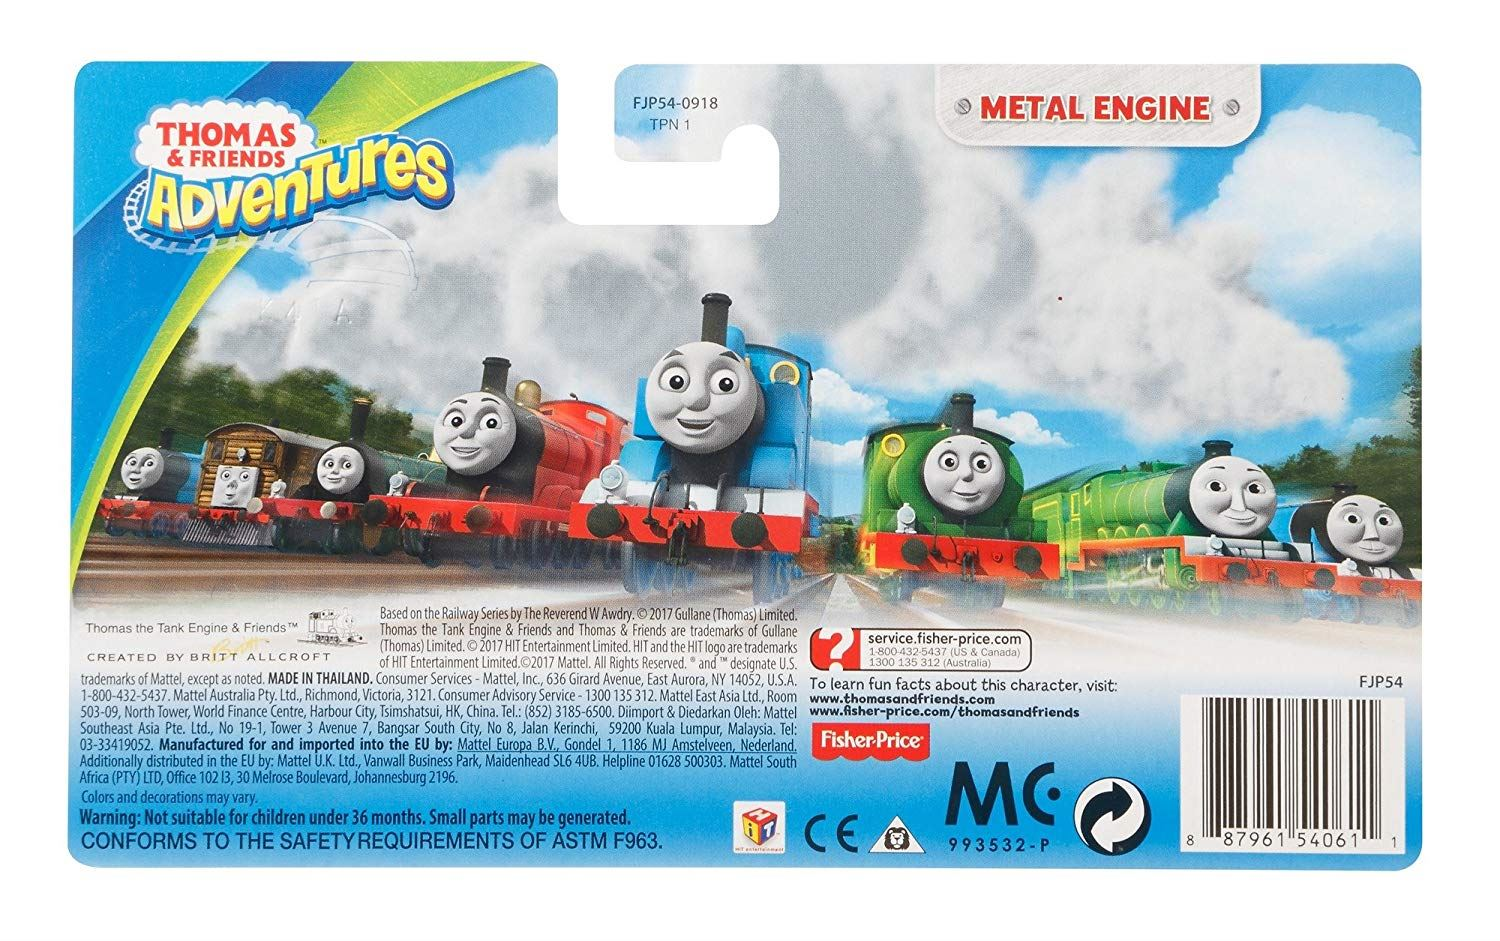 Thomas-amp-Friends-Adventures-Ferdinand-lexi-Shane-Dash-Huge-Bill-Trains Indexbild 14